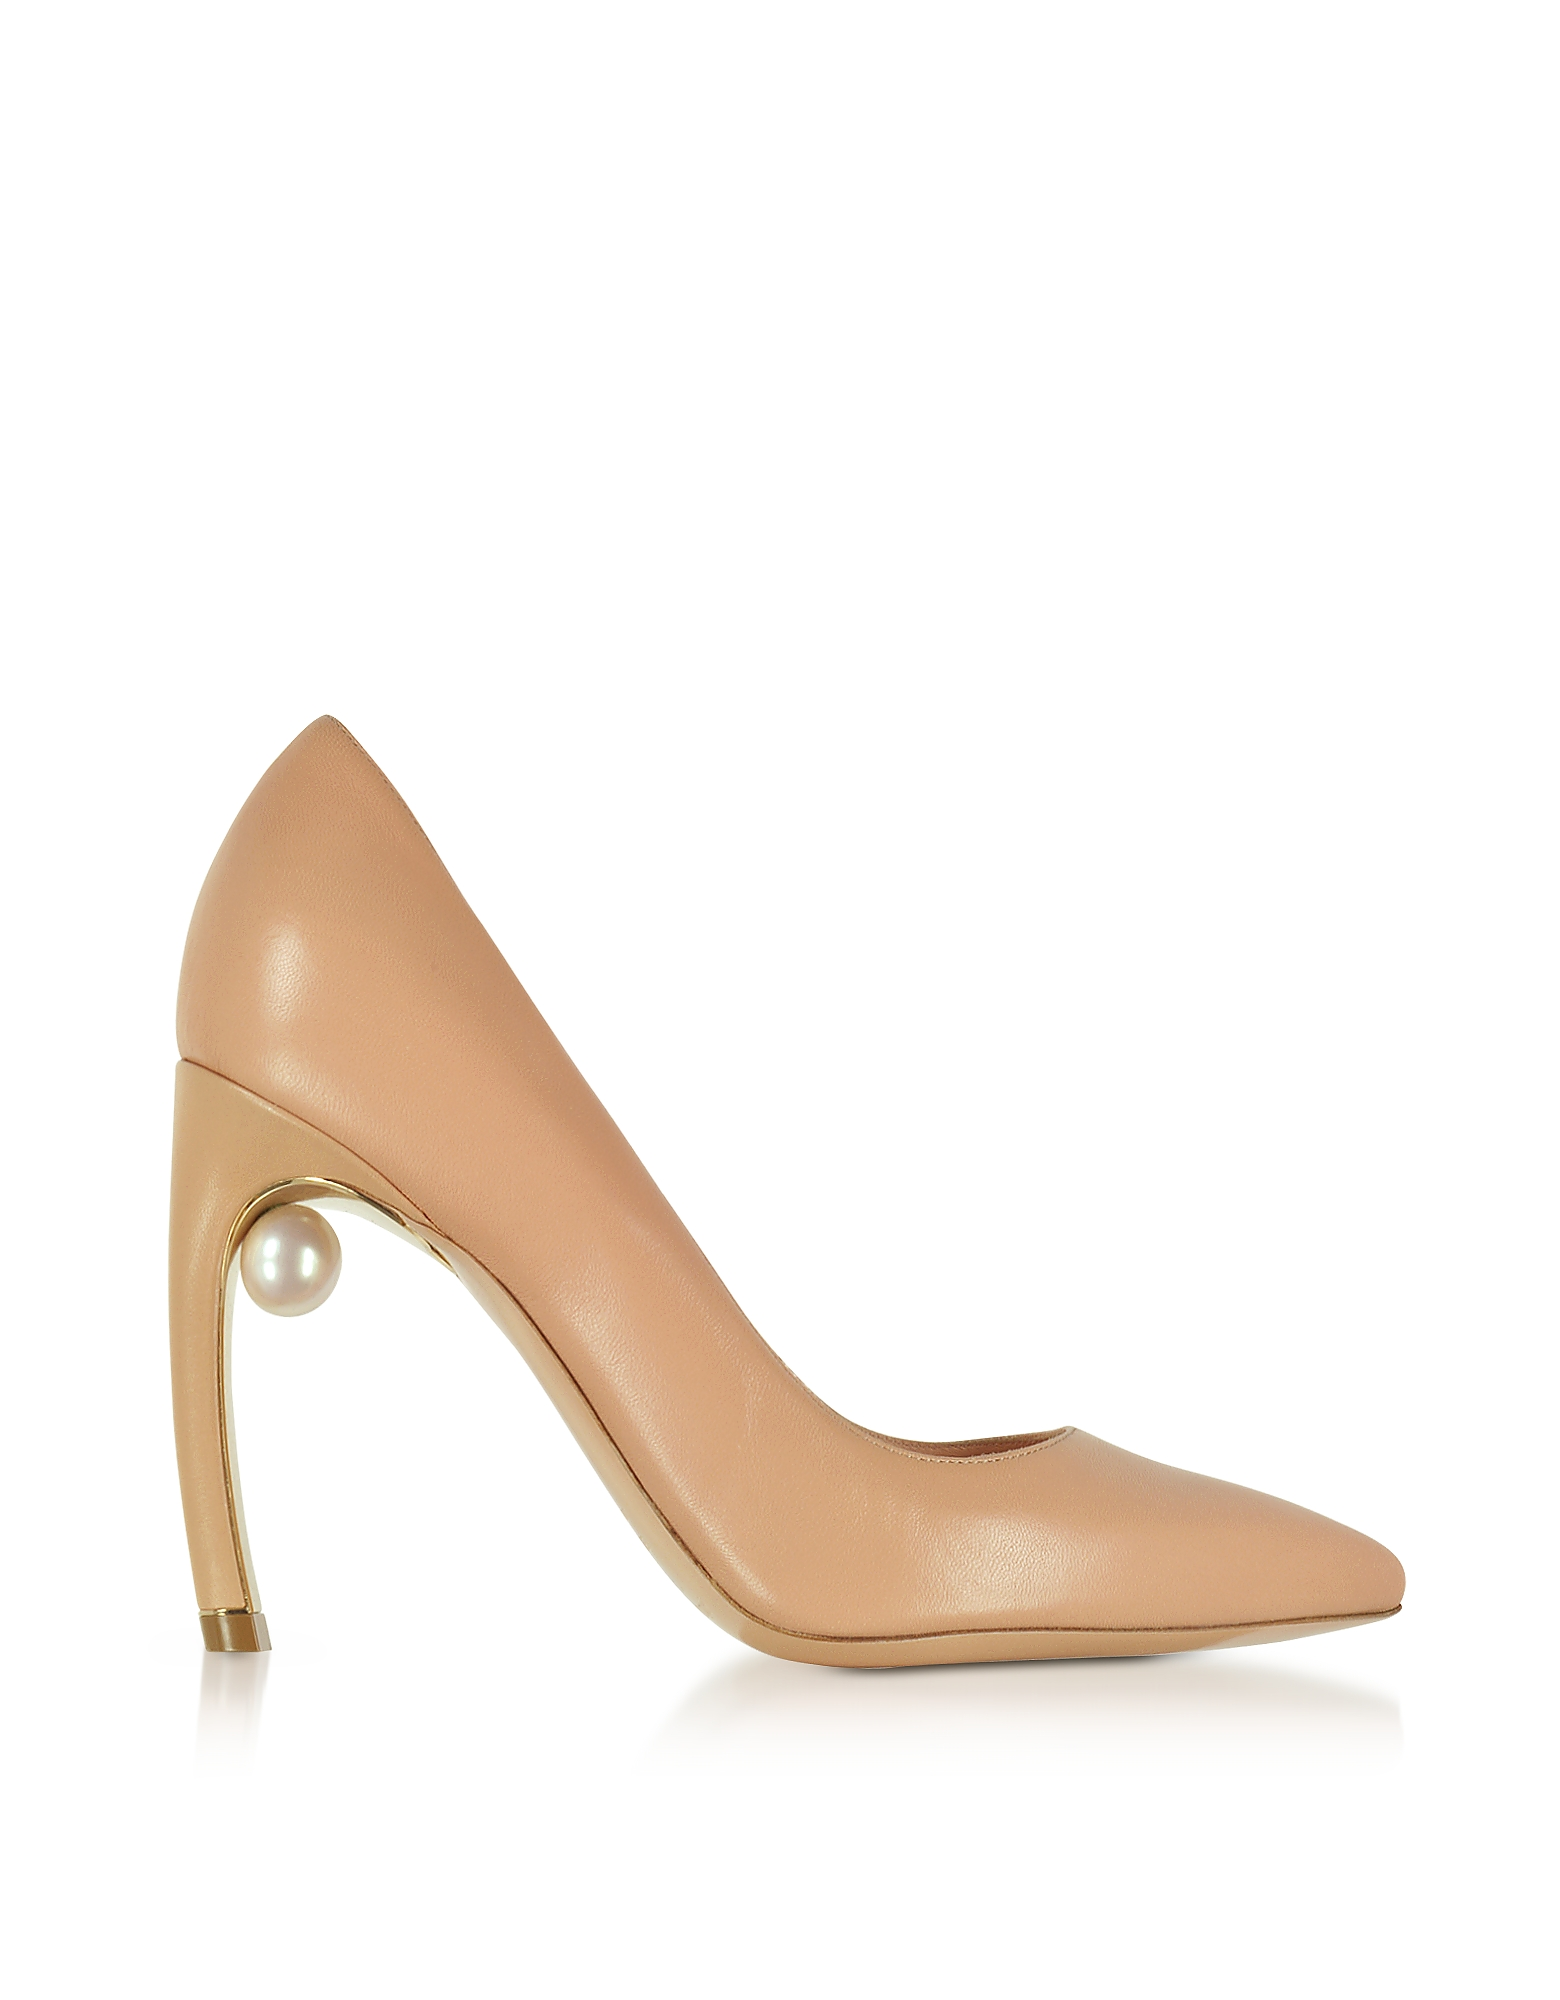 Nicholas Kirkwood Shoes, Nude Nappa Leather Mira Pearl Pumps